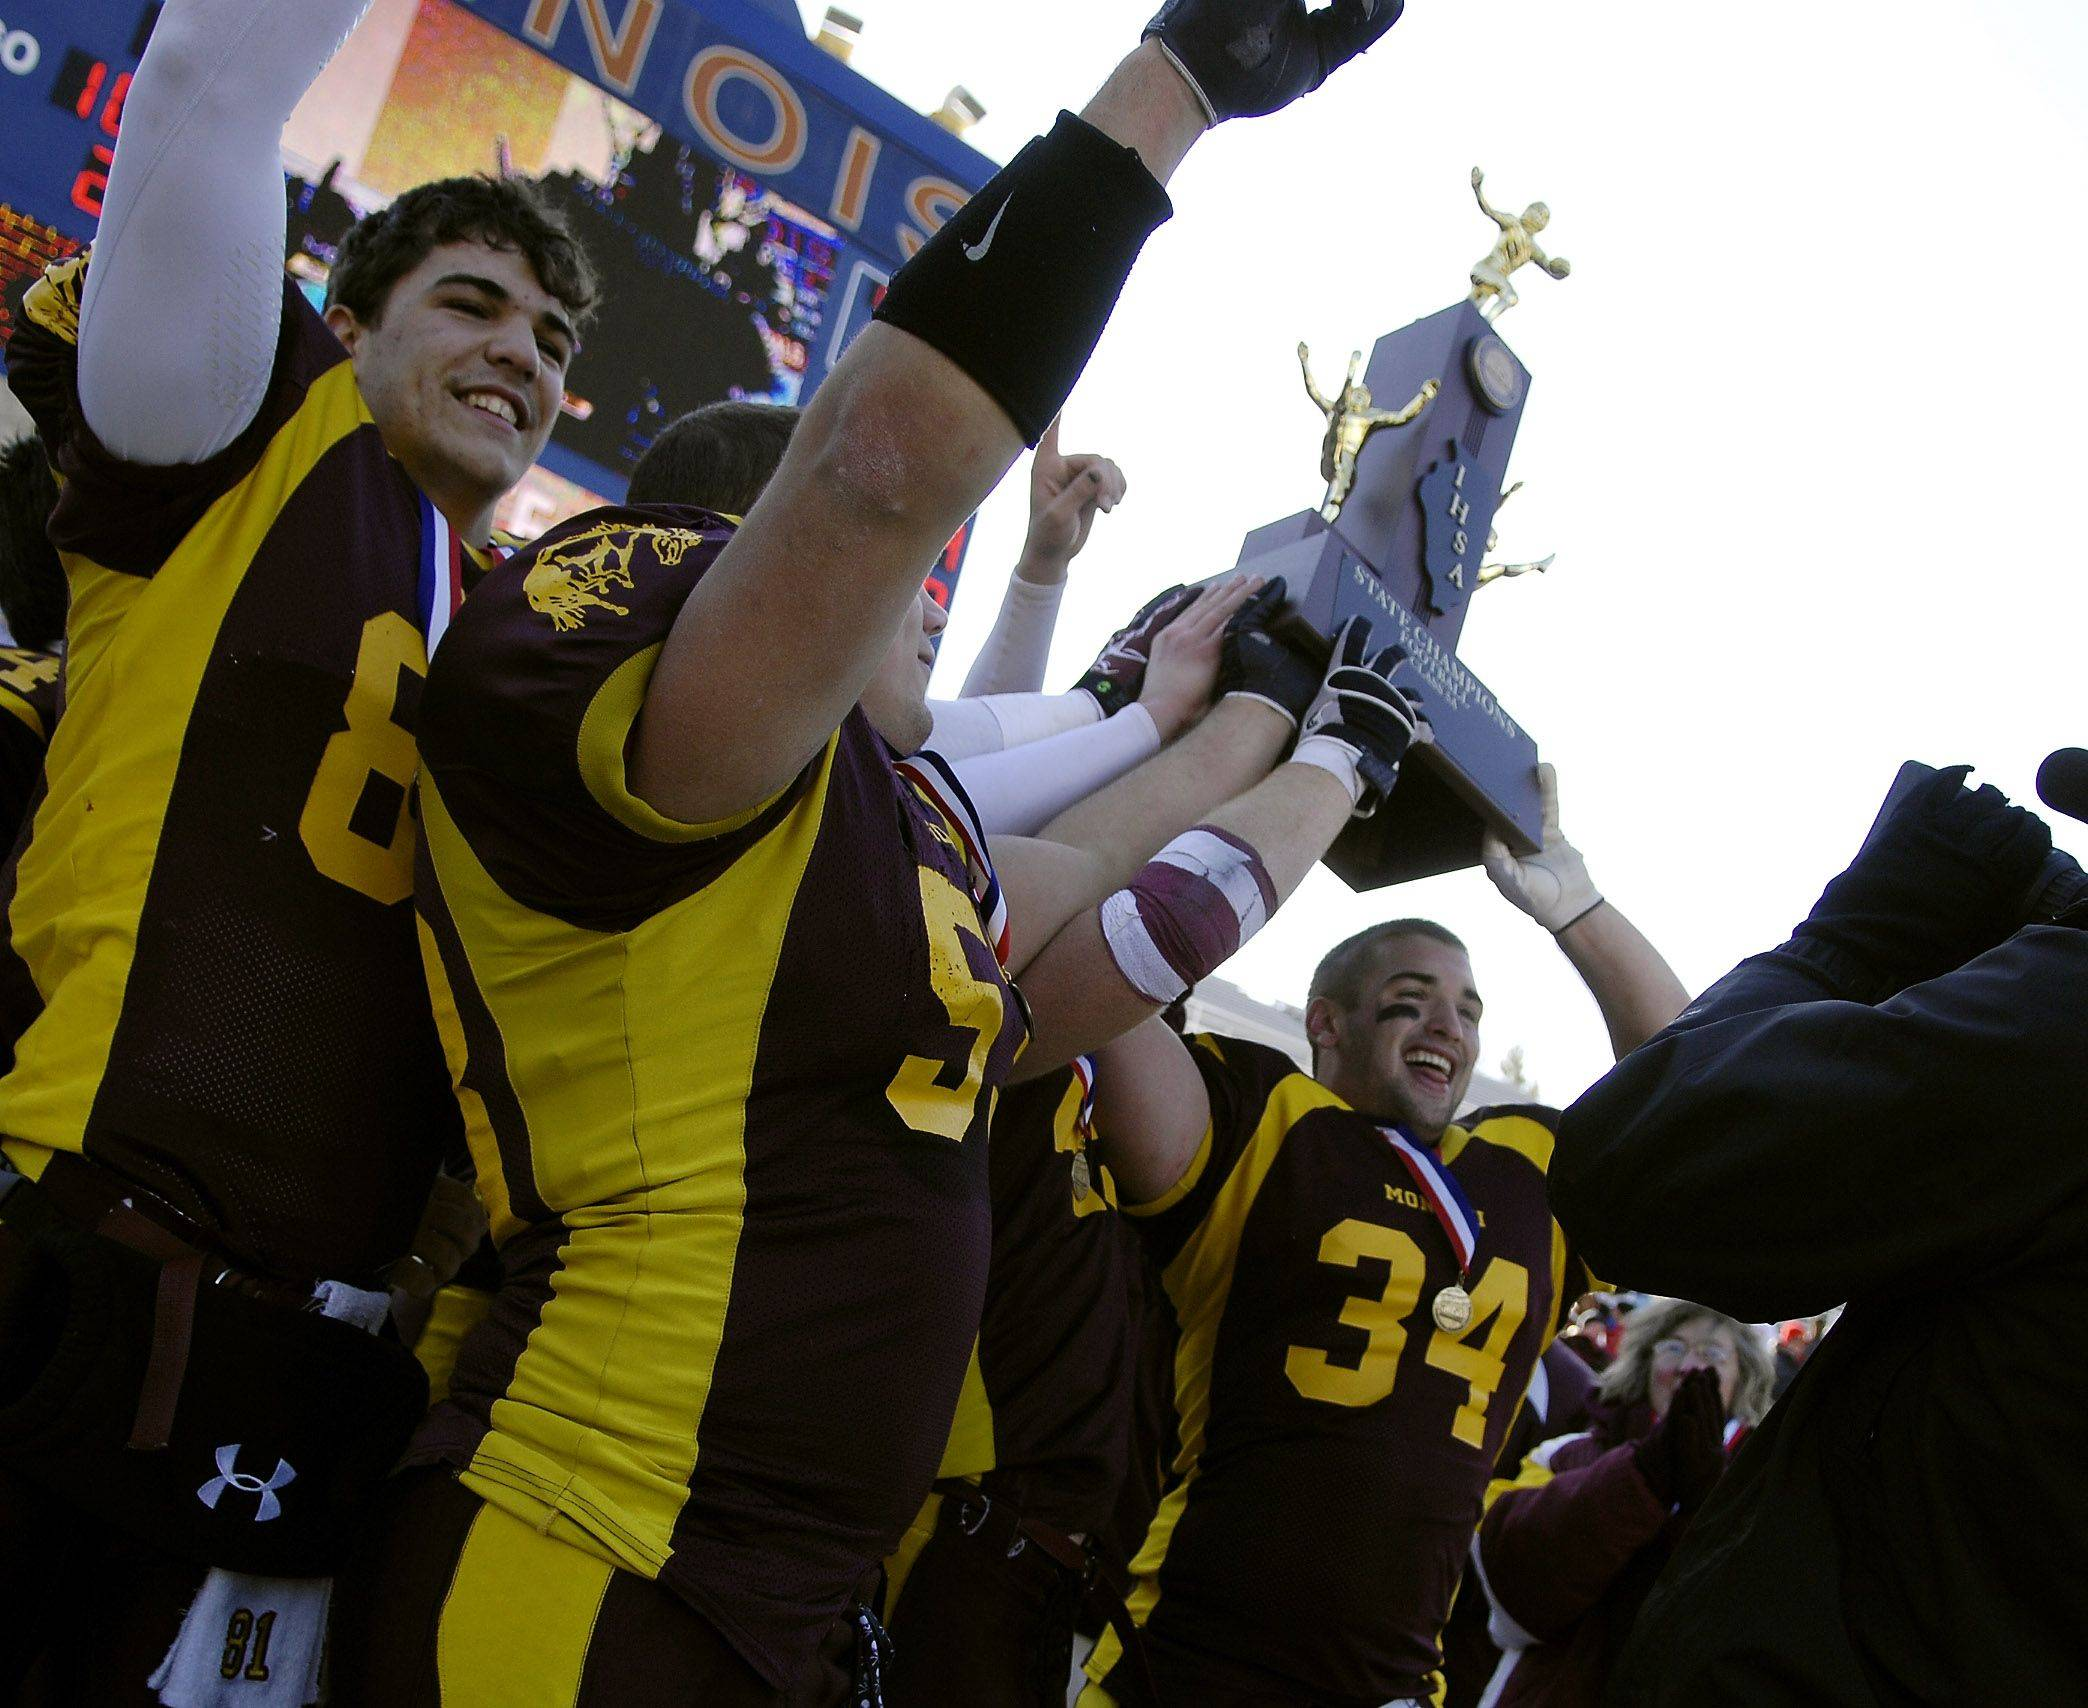 Montini's Doug Diedrick (34) and his fellow captains hoist the championship trophy after beating Chatham Glenwood during the Class 5A state championsip in Champaign Saturday.